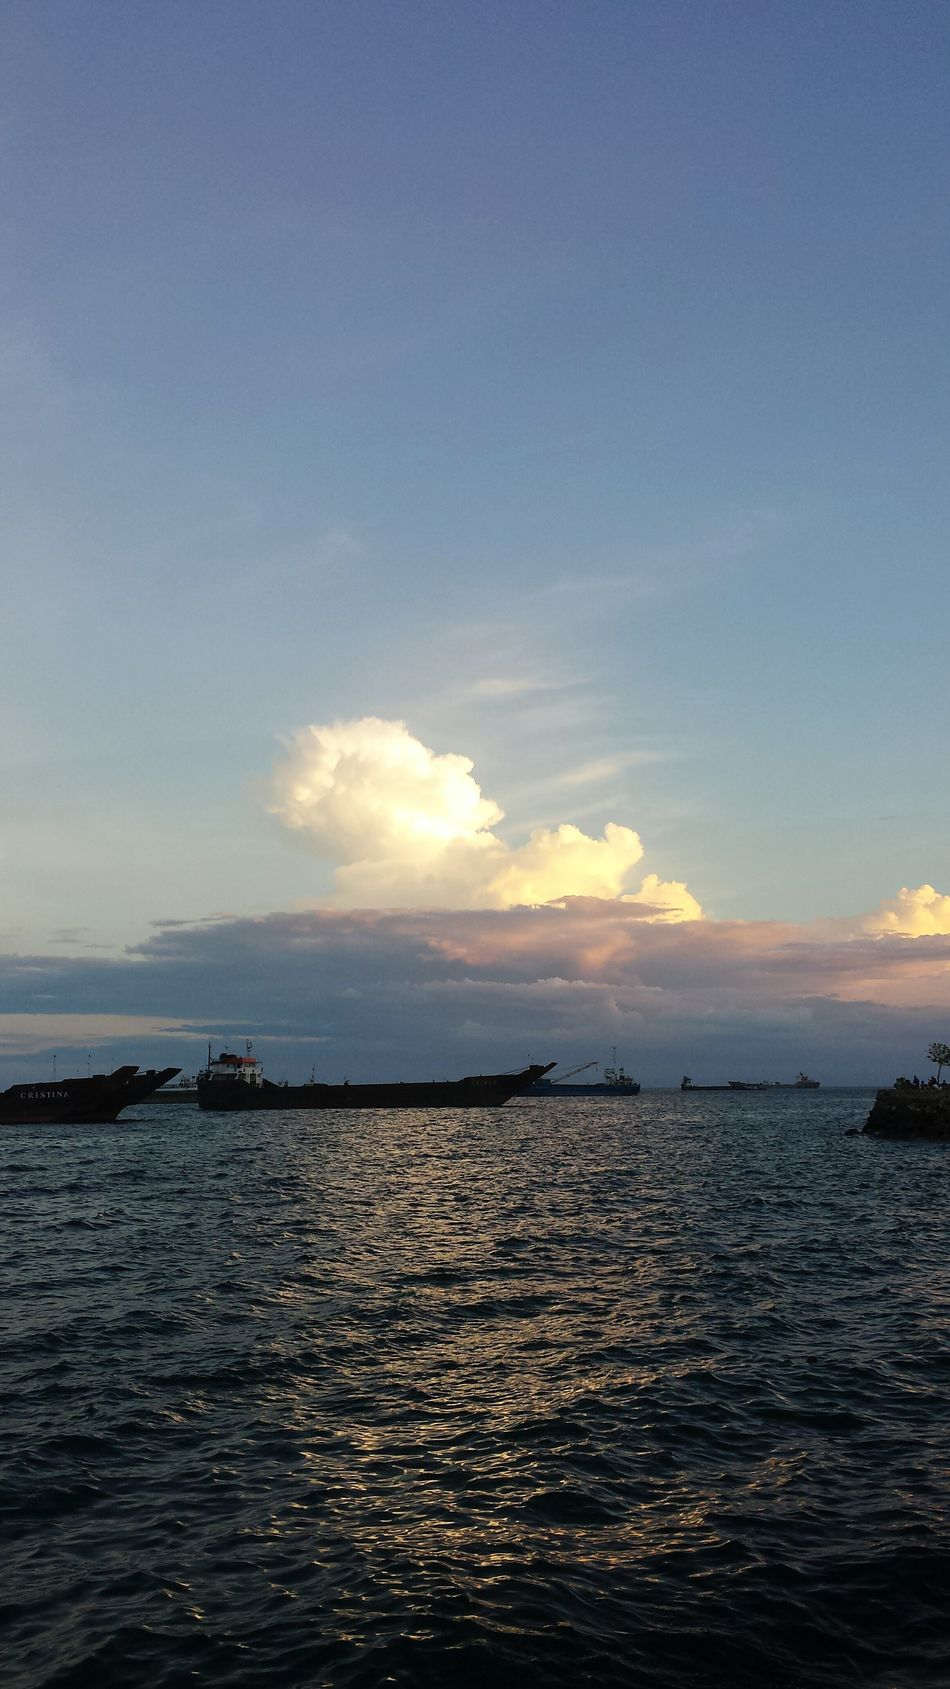 The Places I've Been Today Sunset Enjoying The View Relaxing Taking Photo Nature Beach Cebu Philippines Remie'sphotography